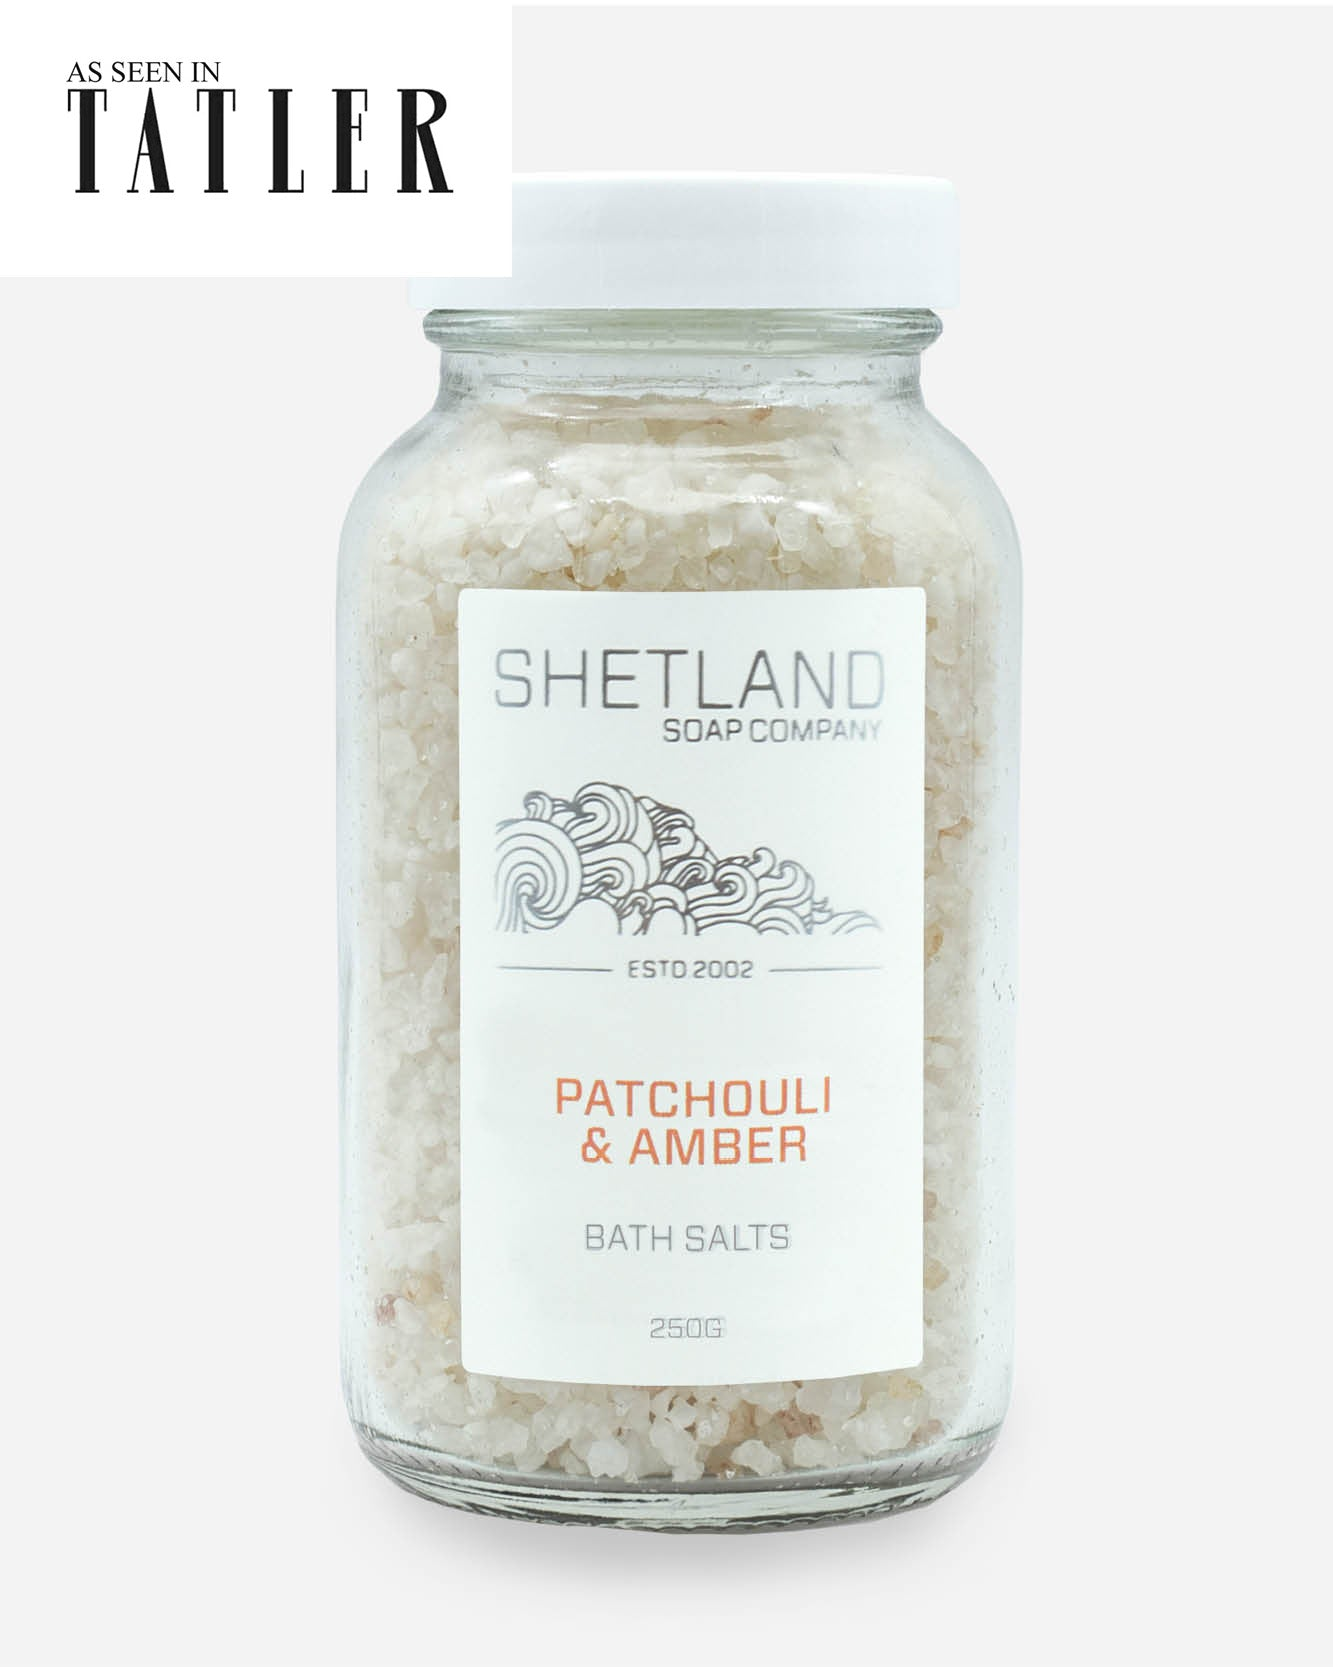 PATCHOULI & AMBER BATH SALTS